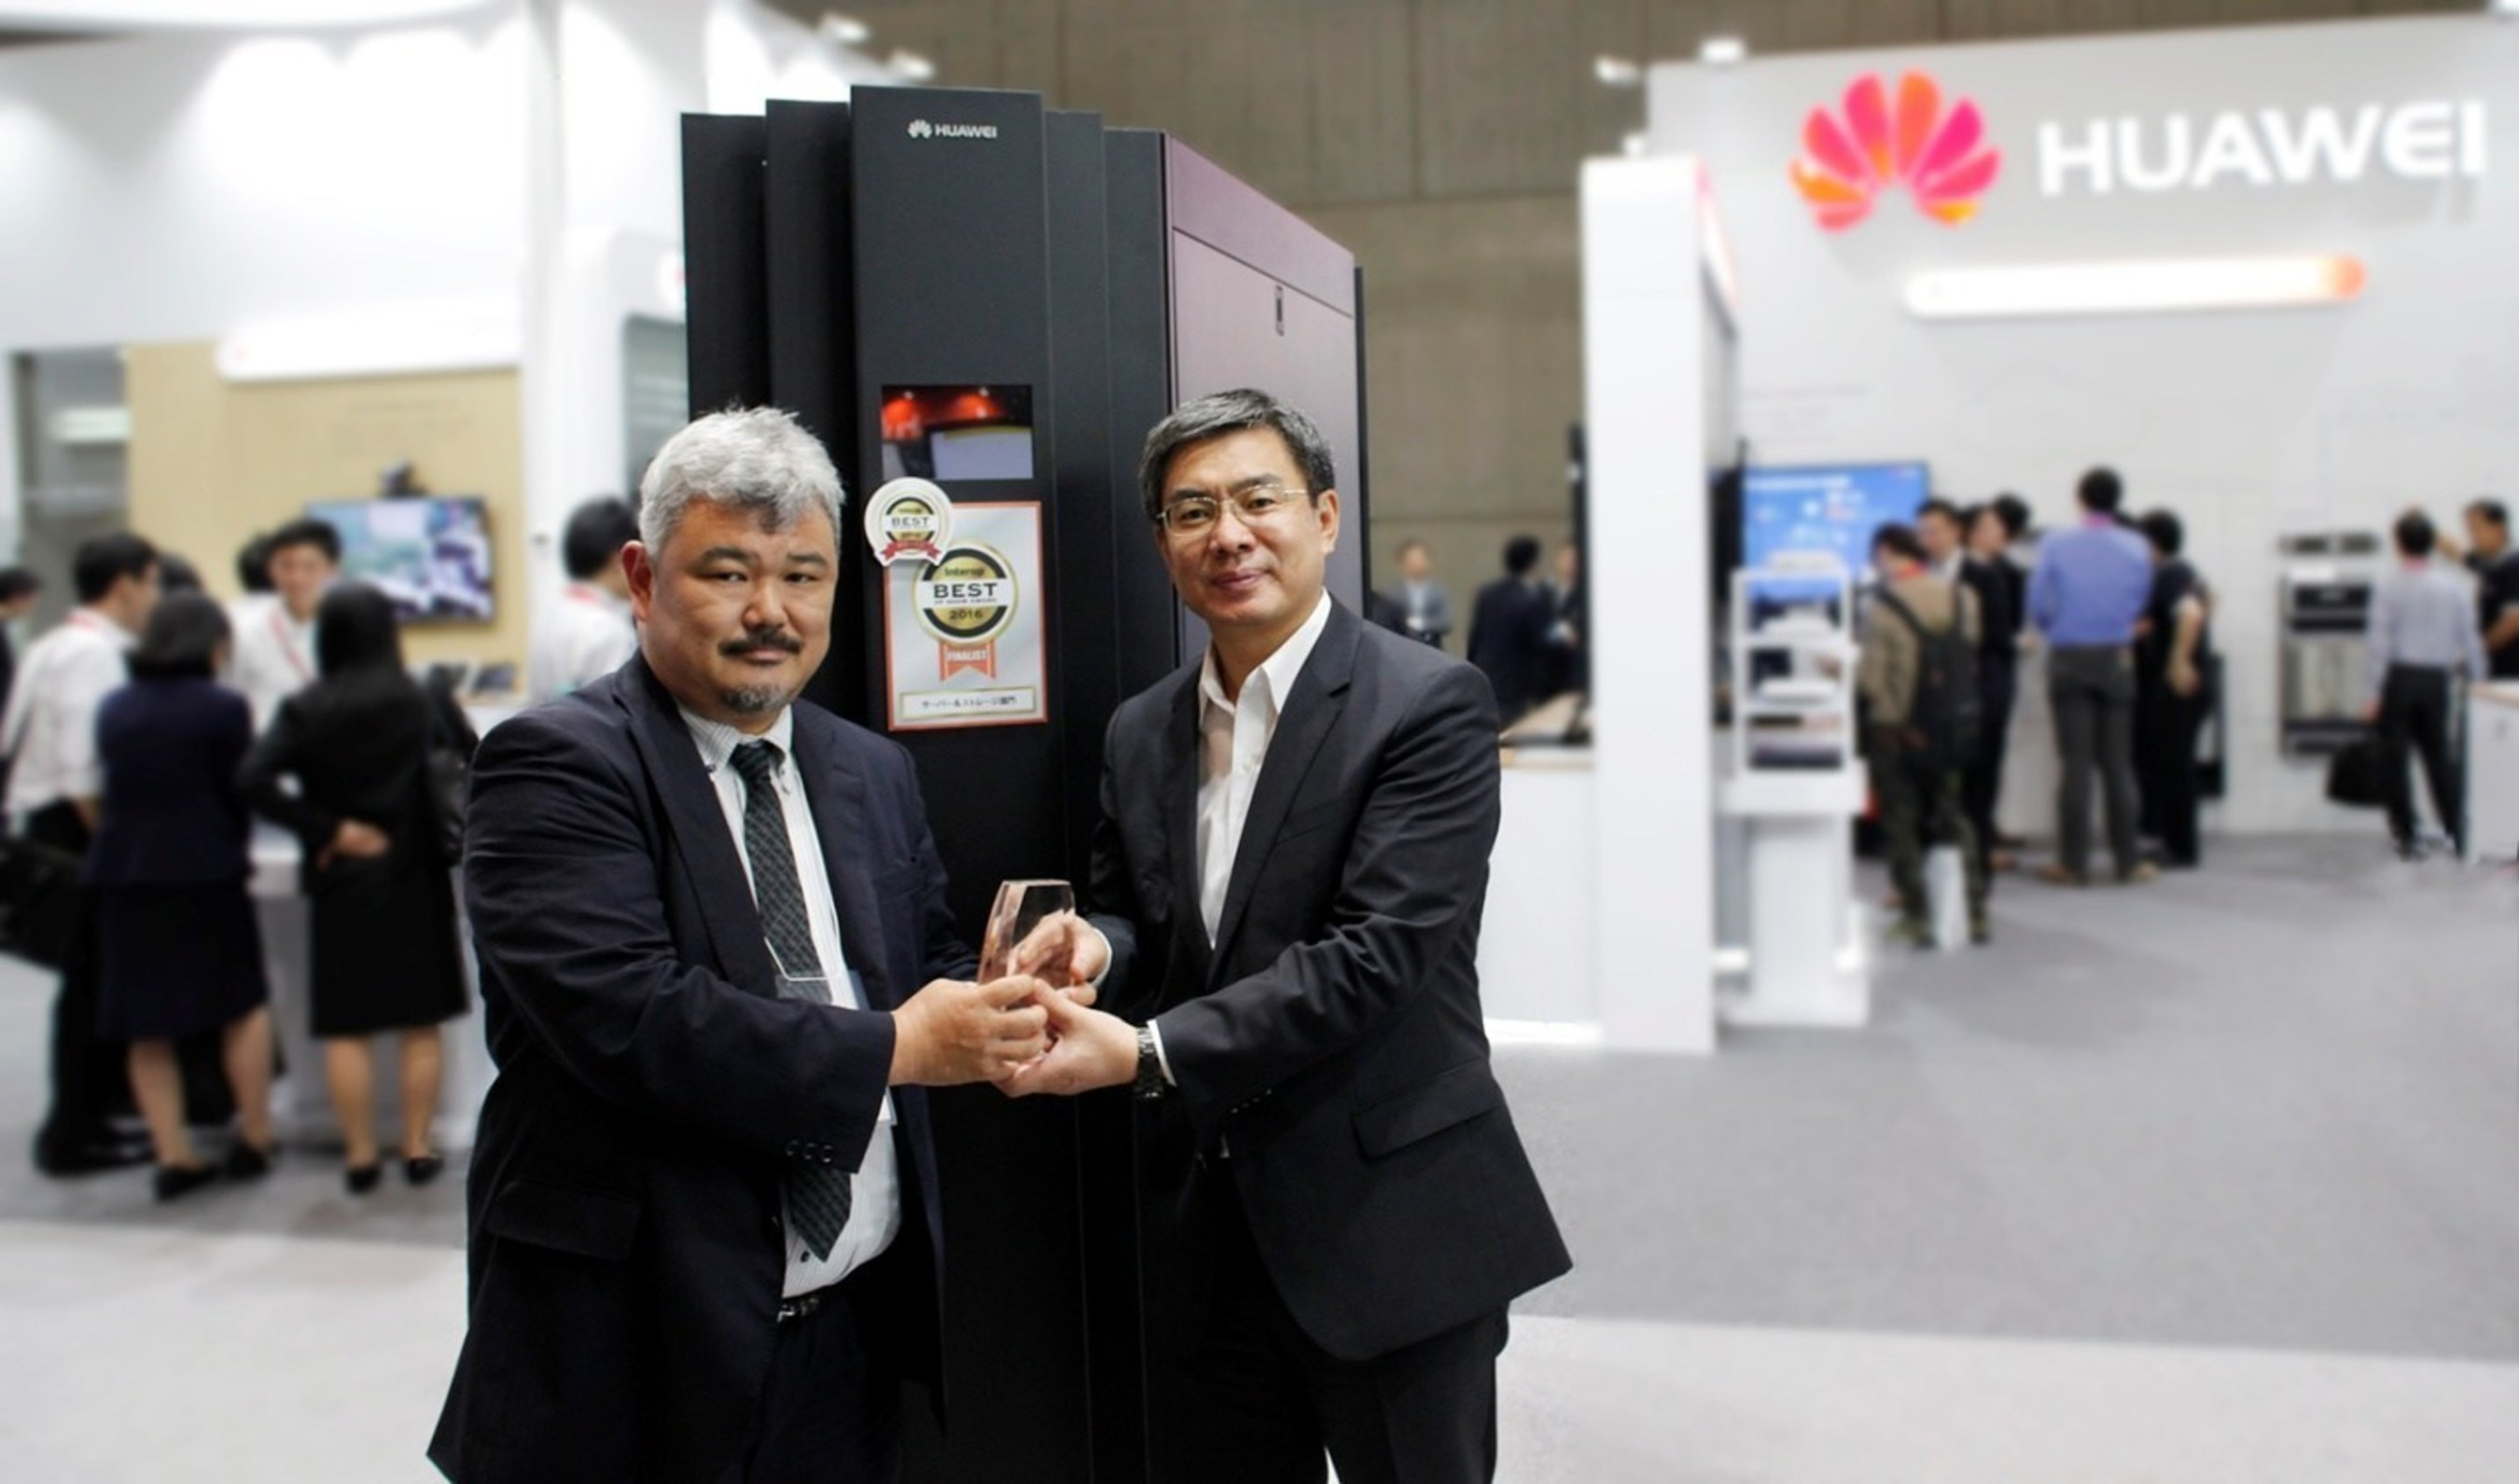 "Yan Lida, President, Enterprise Business Group, Huawei (right) received the 2016 Interop Tokyo Best of Show ""Grand Prix"" Award for the Huawei KunLun 9032 Mission Critical Server from a representative of the Interop Tokyo Committee (left)."